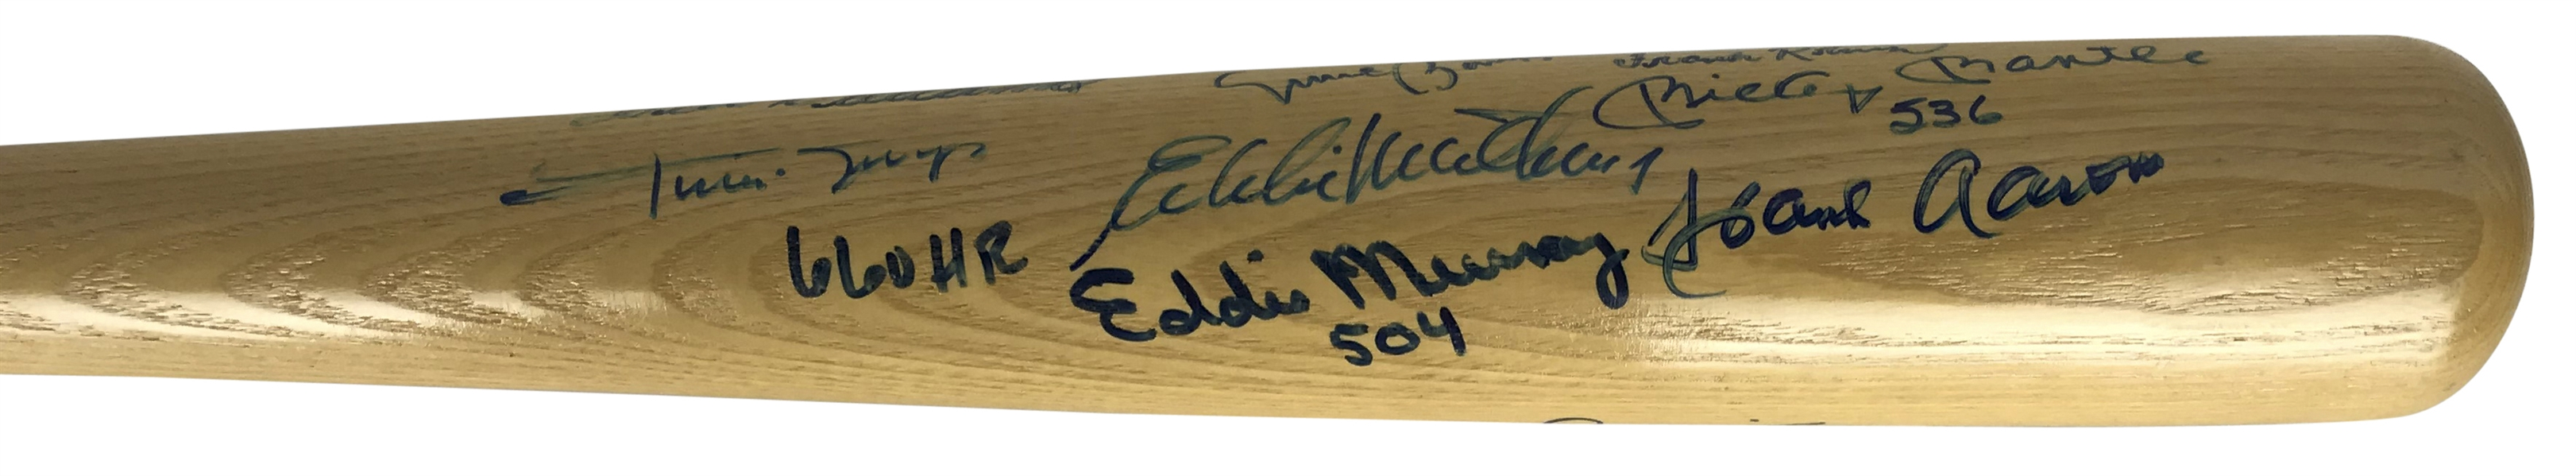 500 Home Run Club Multi-Signed Baseball Bat w/ Incredible 13 Signatures! (Beckett/BAS Guaranteed)